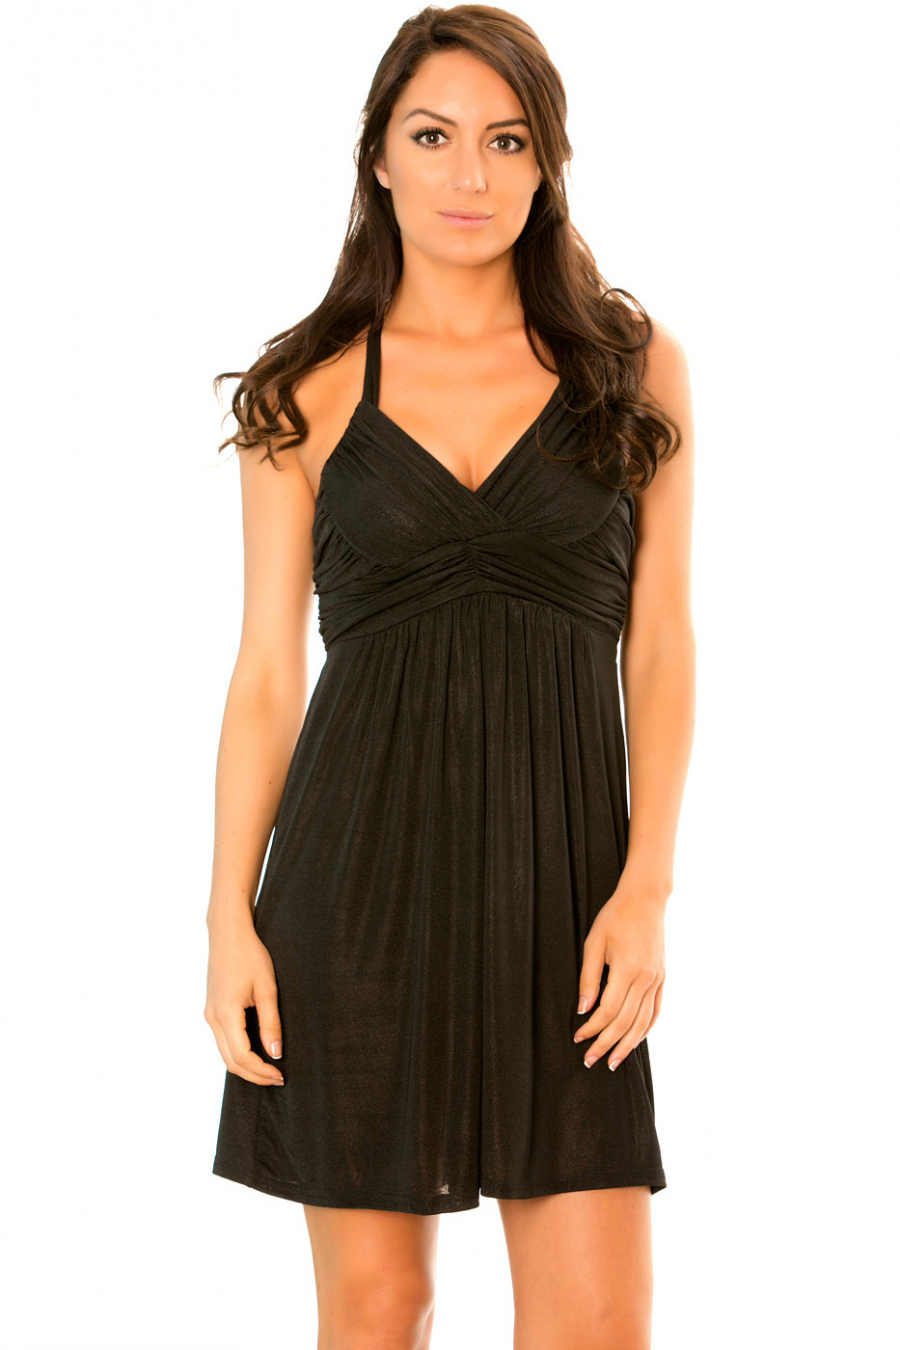 Glittery black dress with plunging neck and strap. 1105